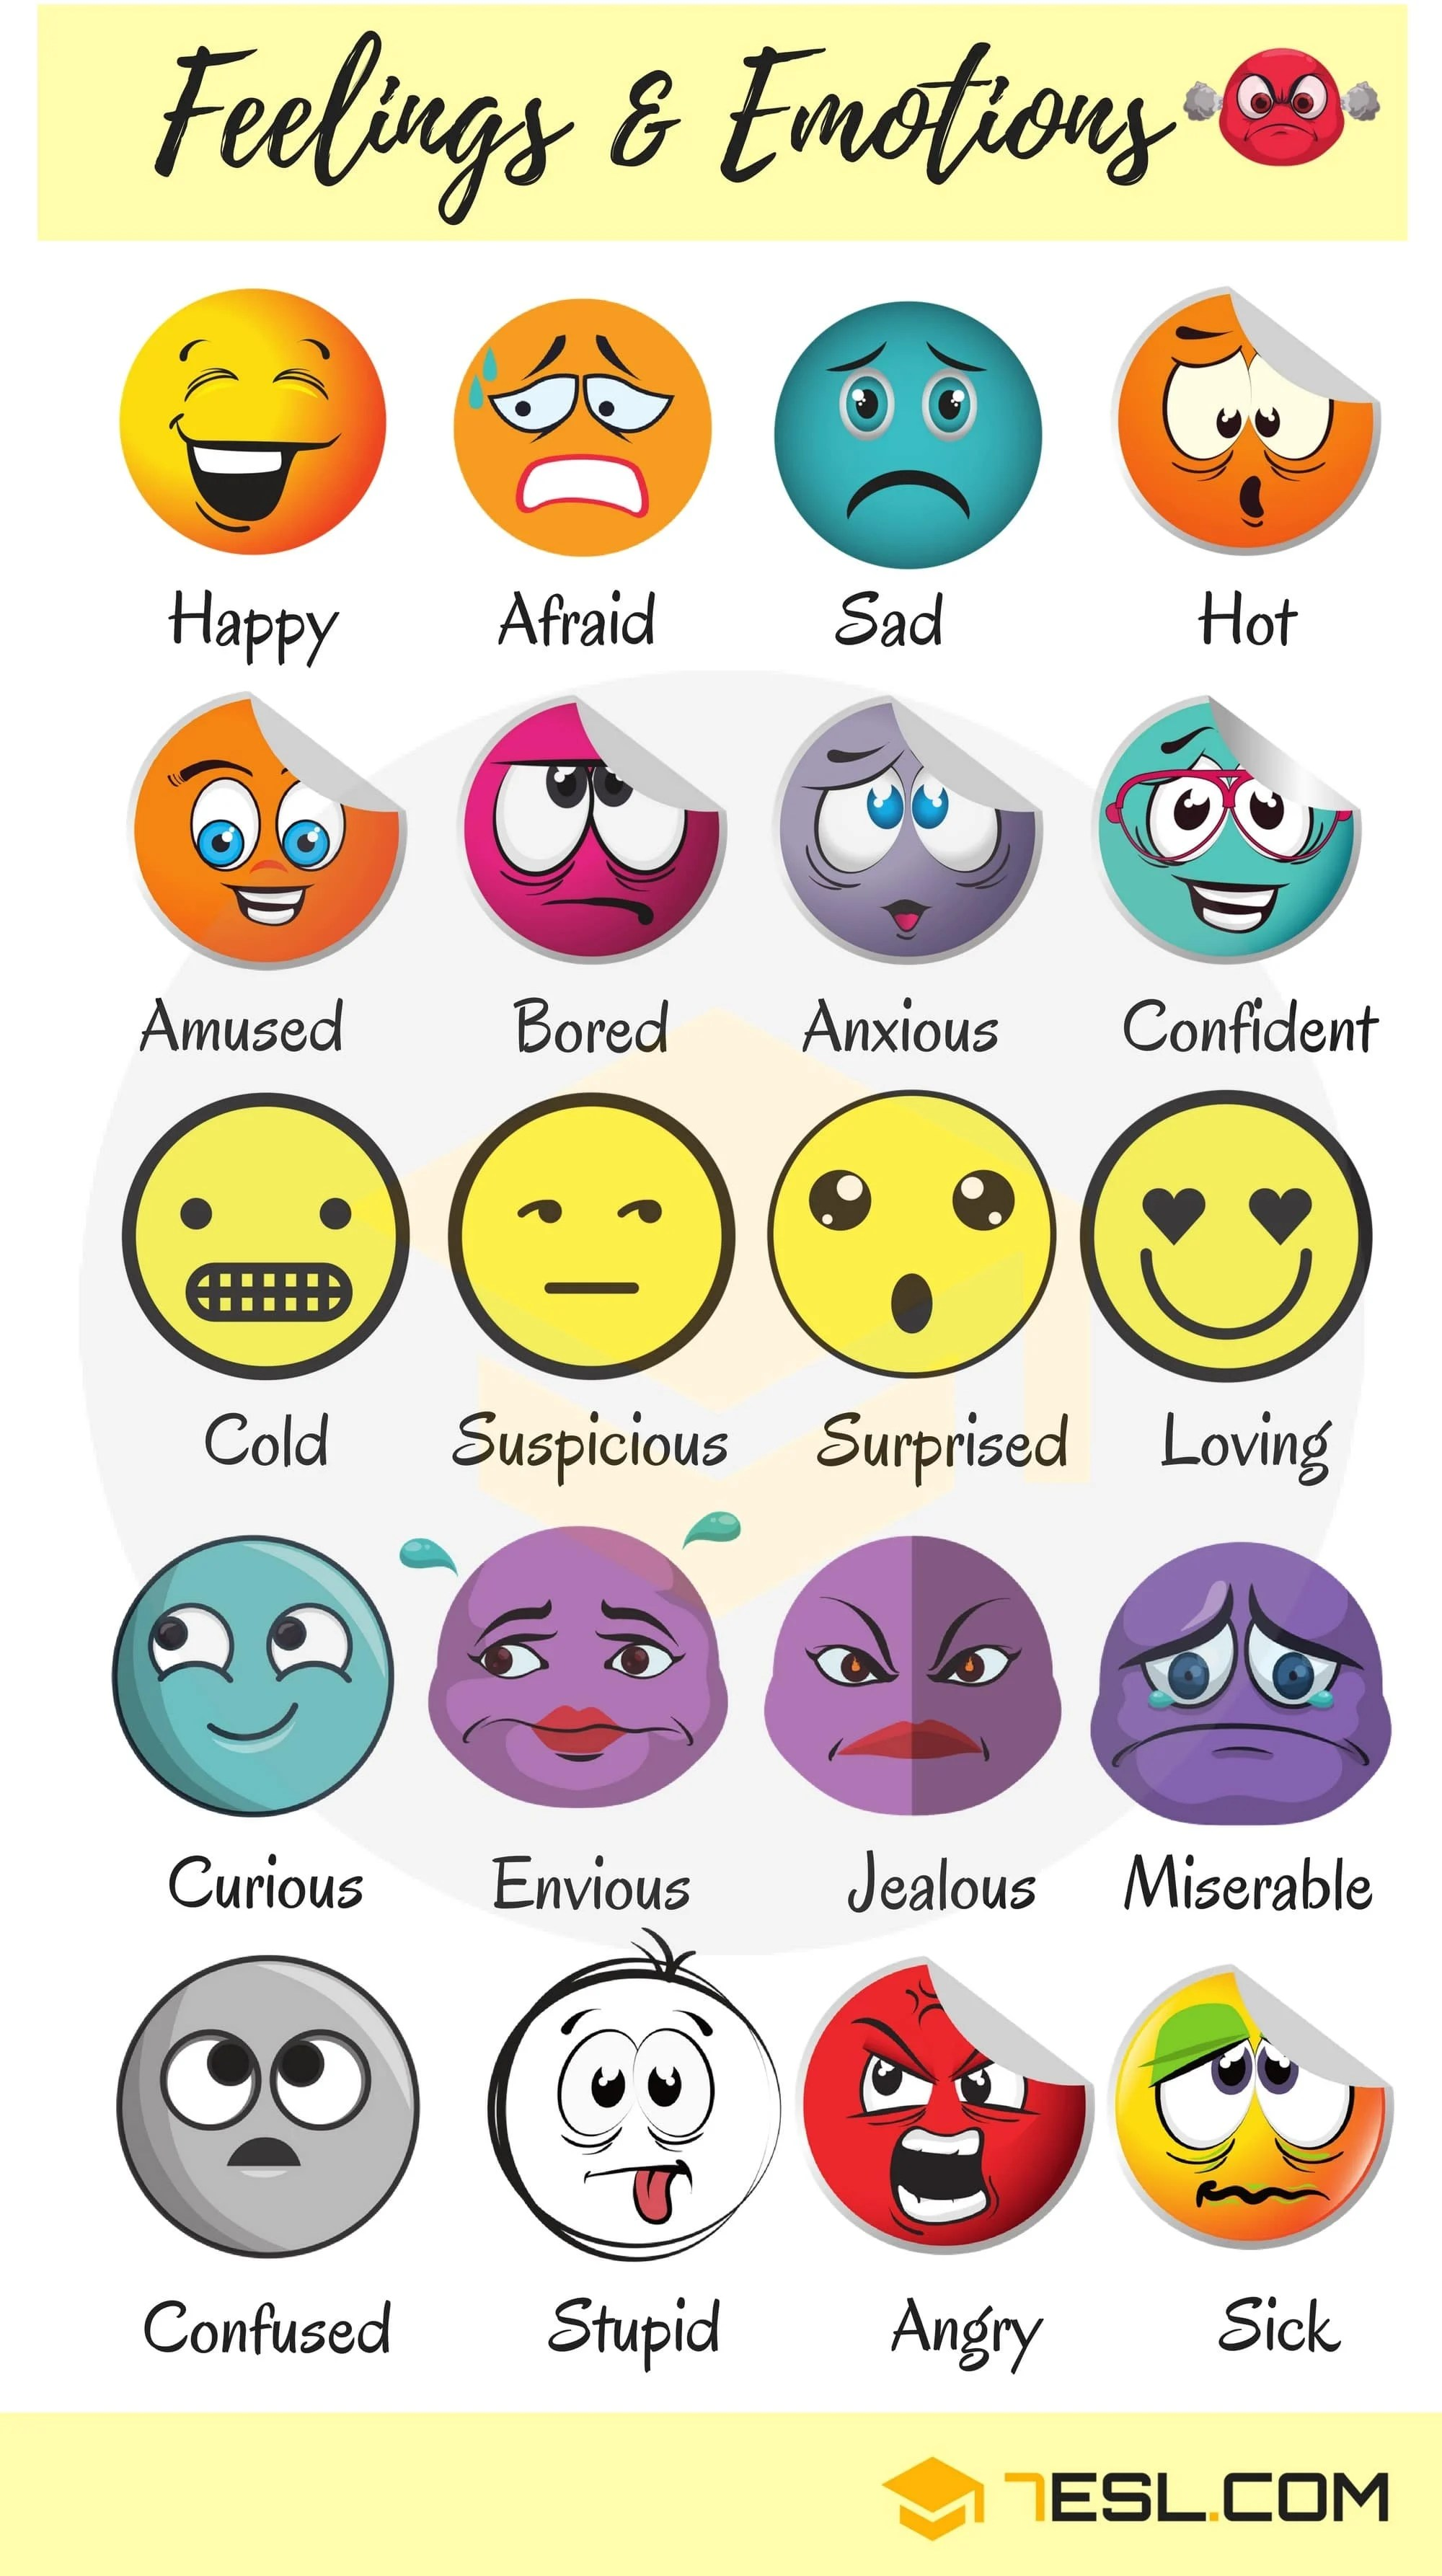 List Of Useful Adjectives To Describe Feelings And